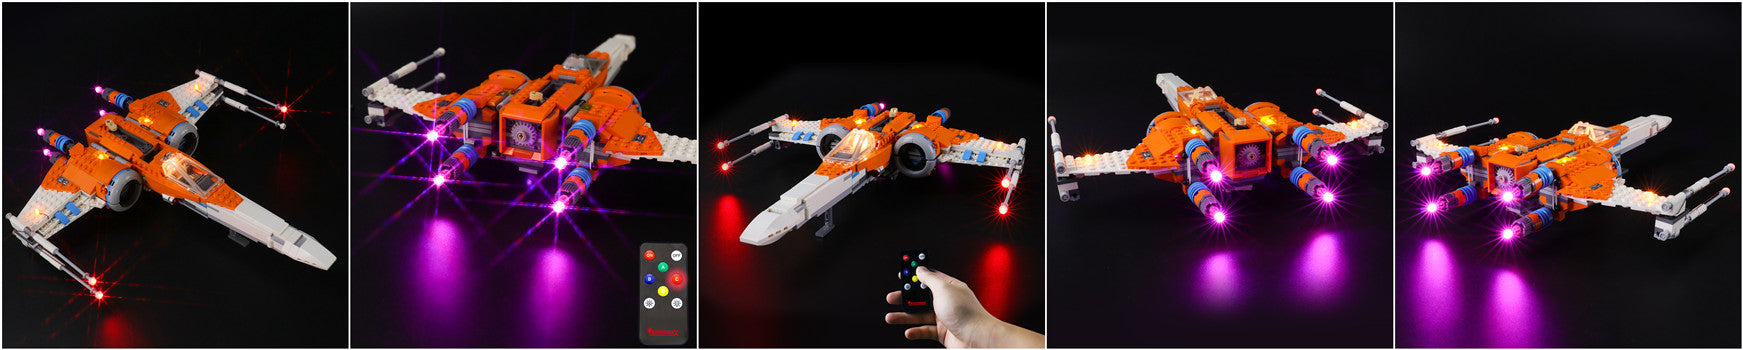 light up lego poe dameron's x-wing fighter